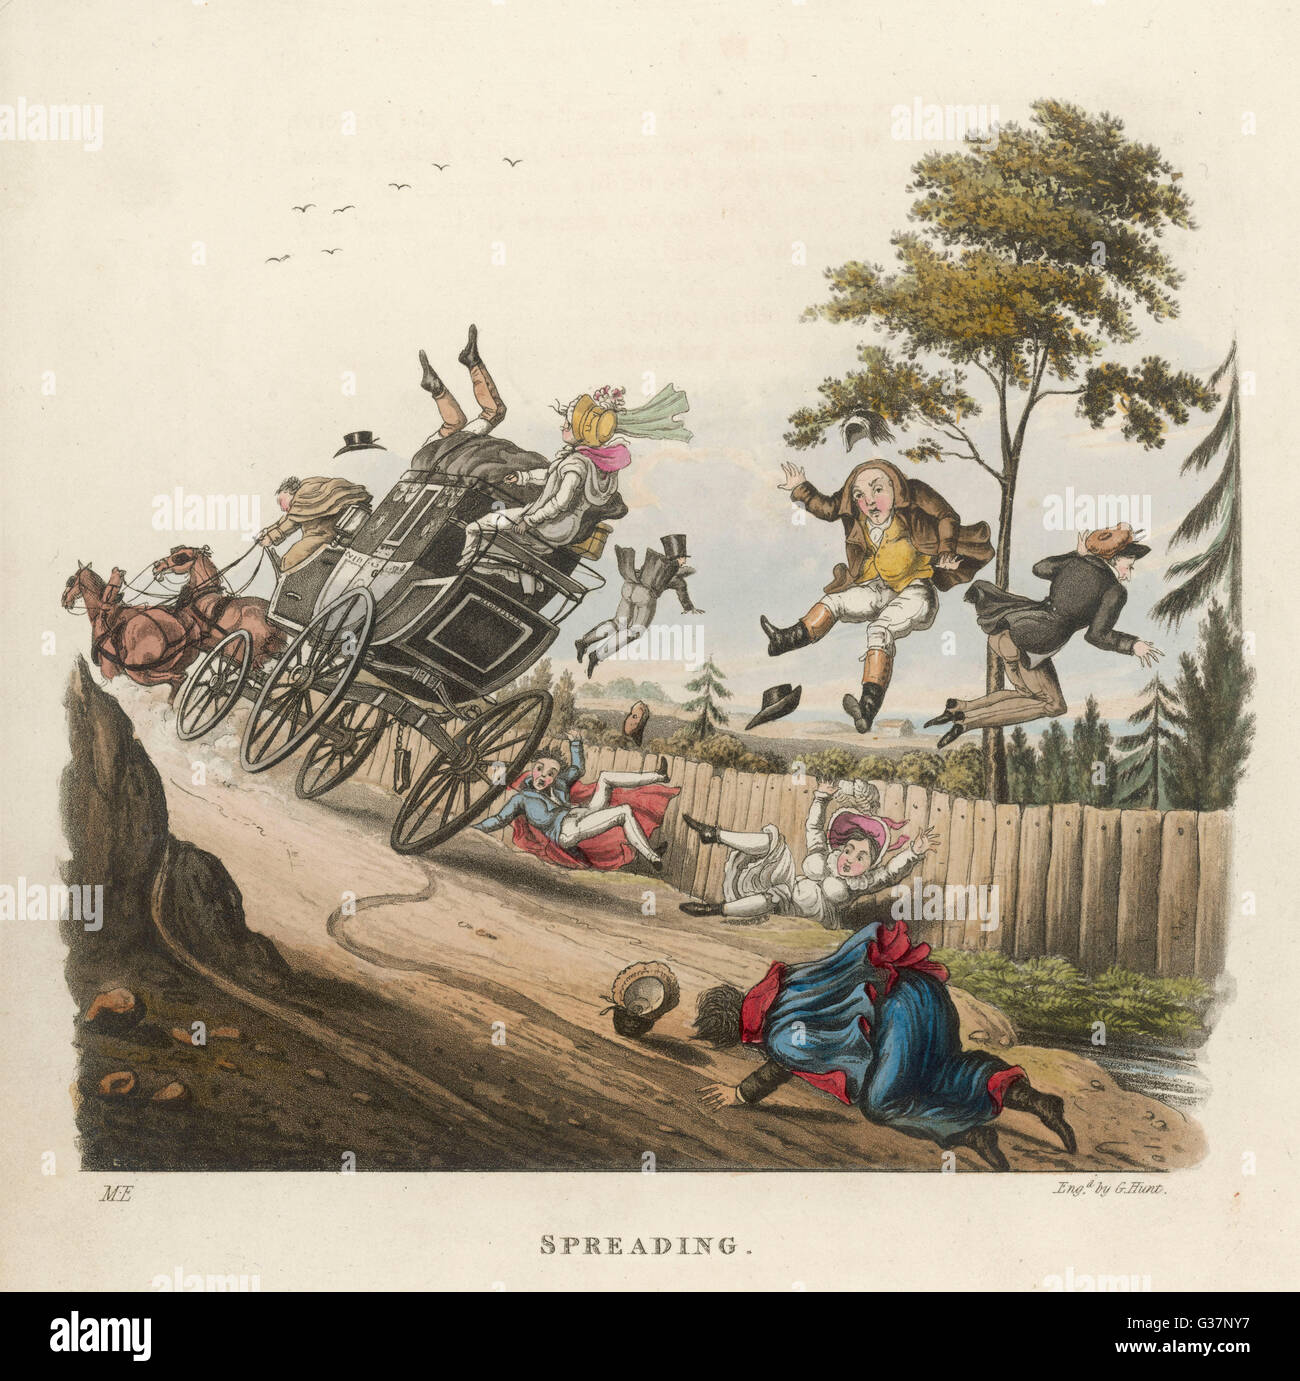 A stagecoach sheds its load...         Date: 1824 - Stock Image